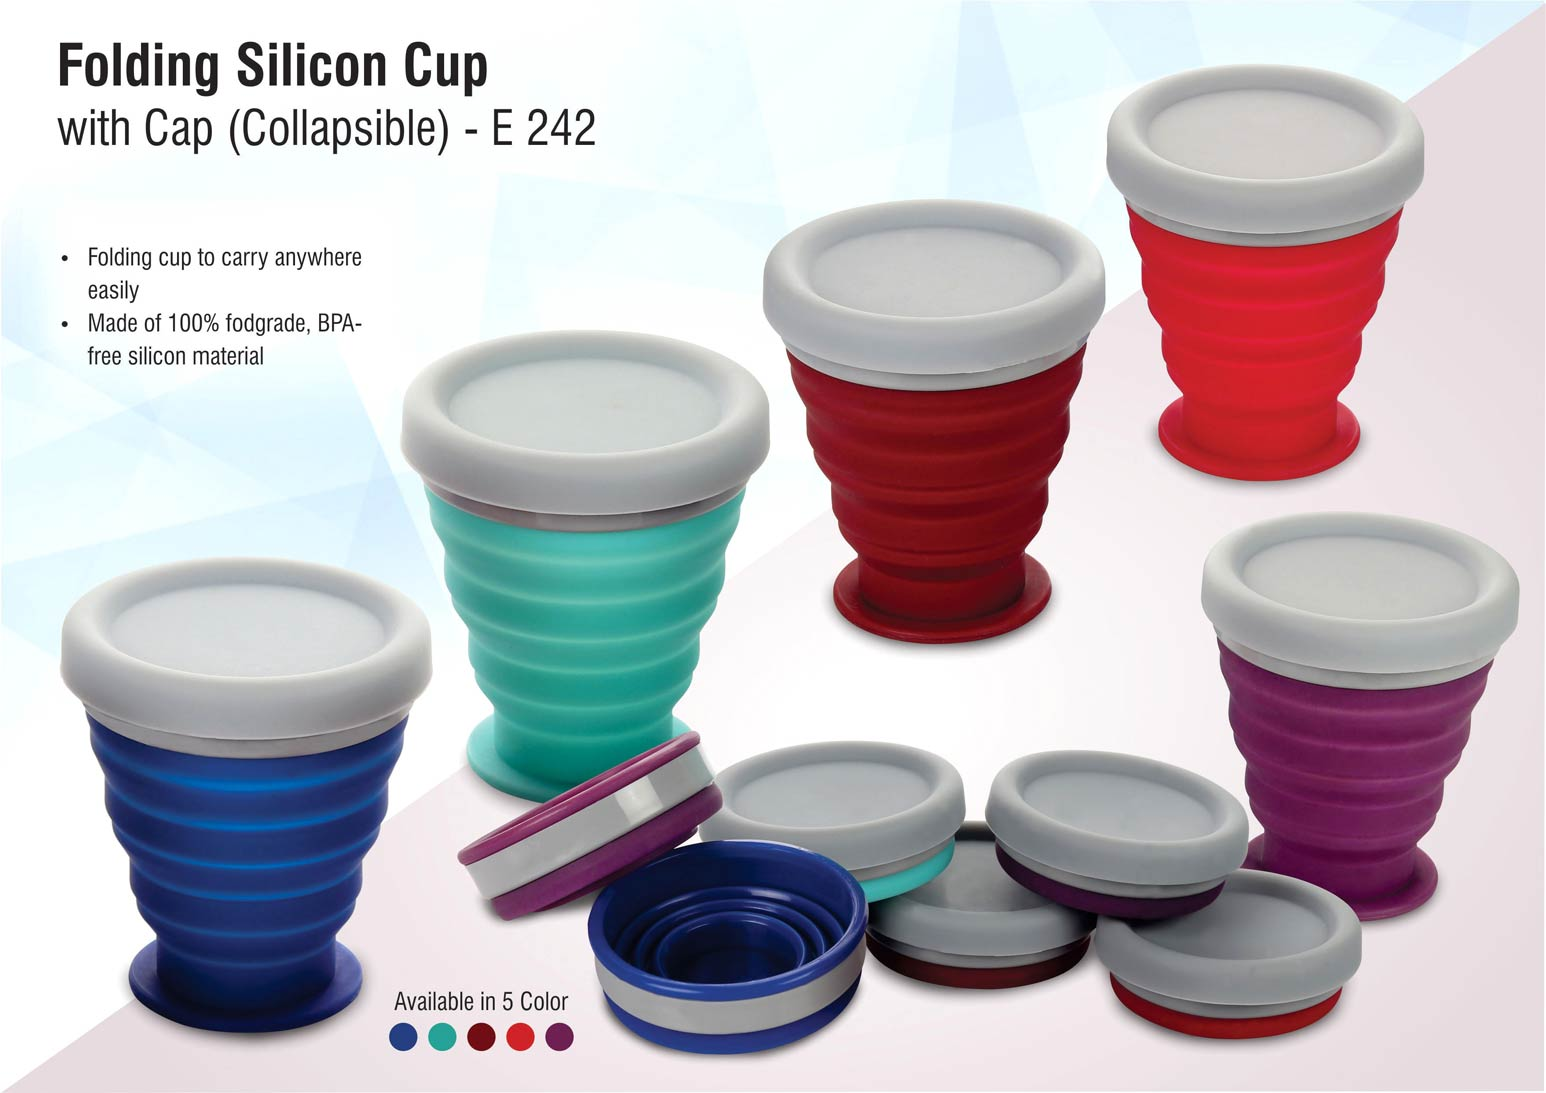 E242 - Folding silicon cup with cap (collapsible)